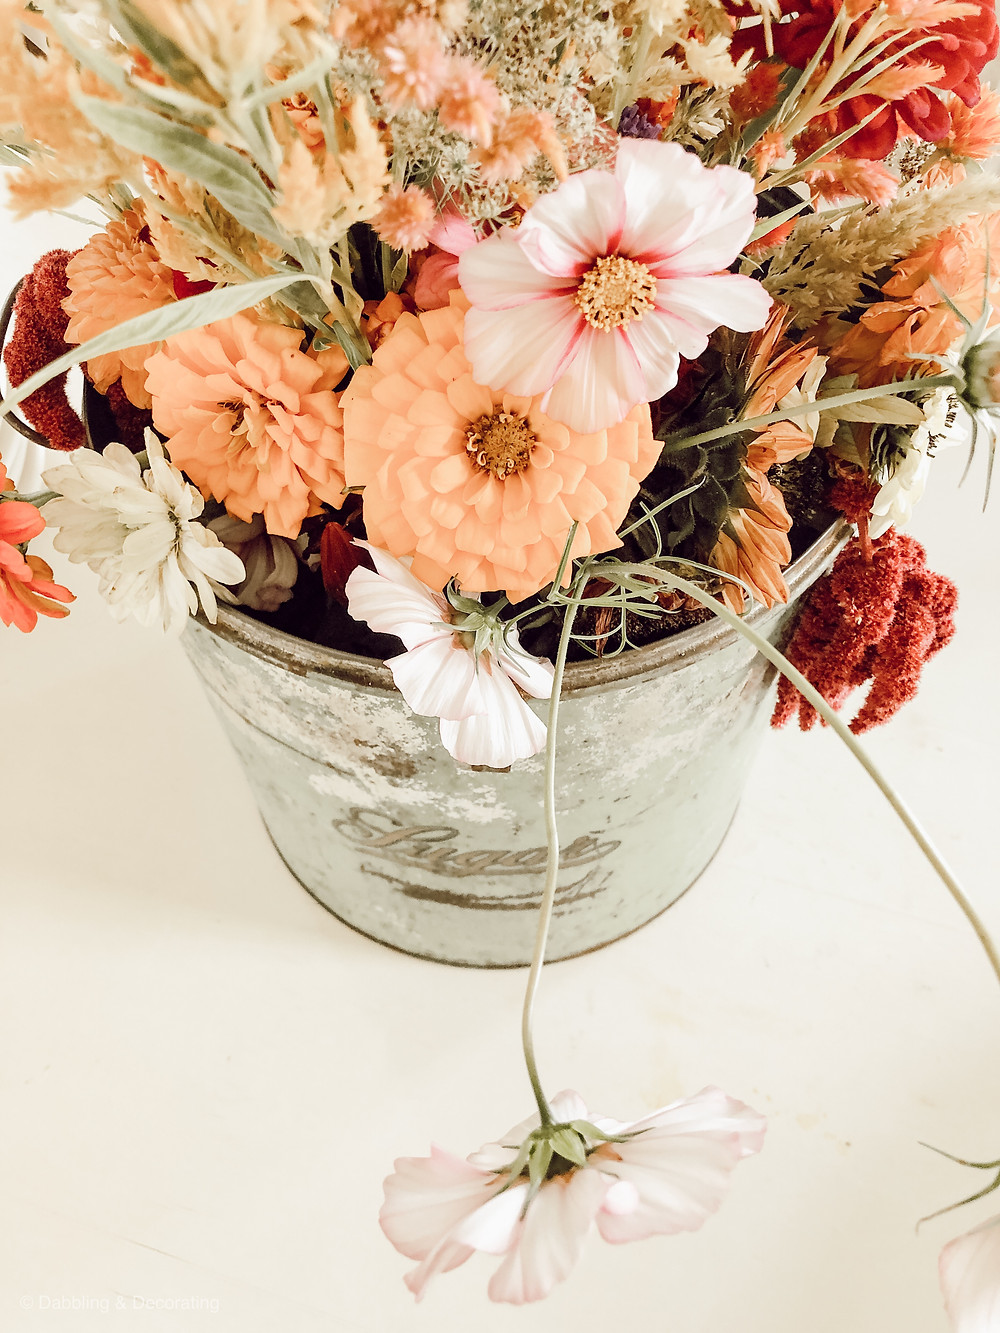 Vintage Sugar Tin Centerpiece